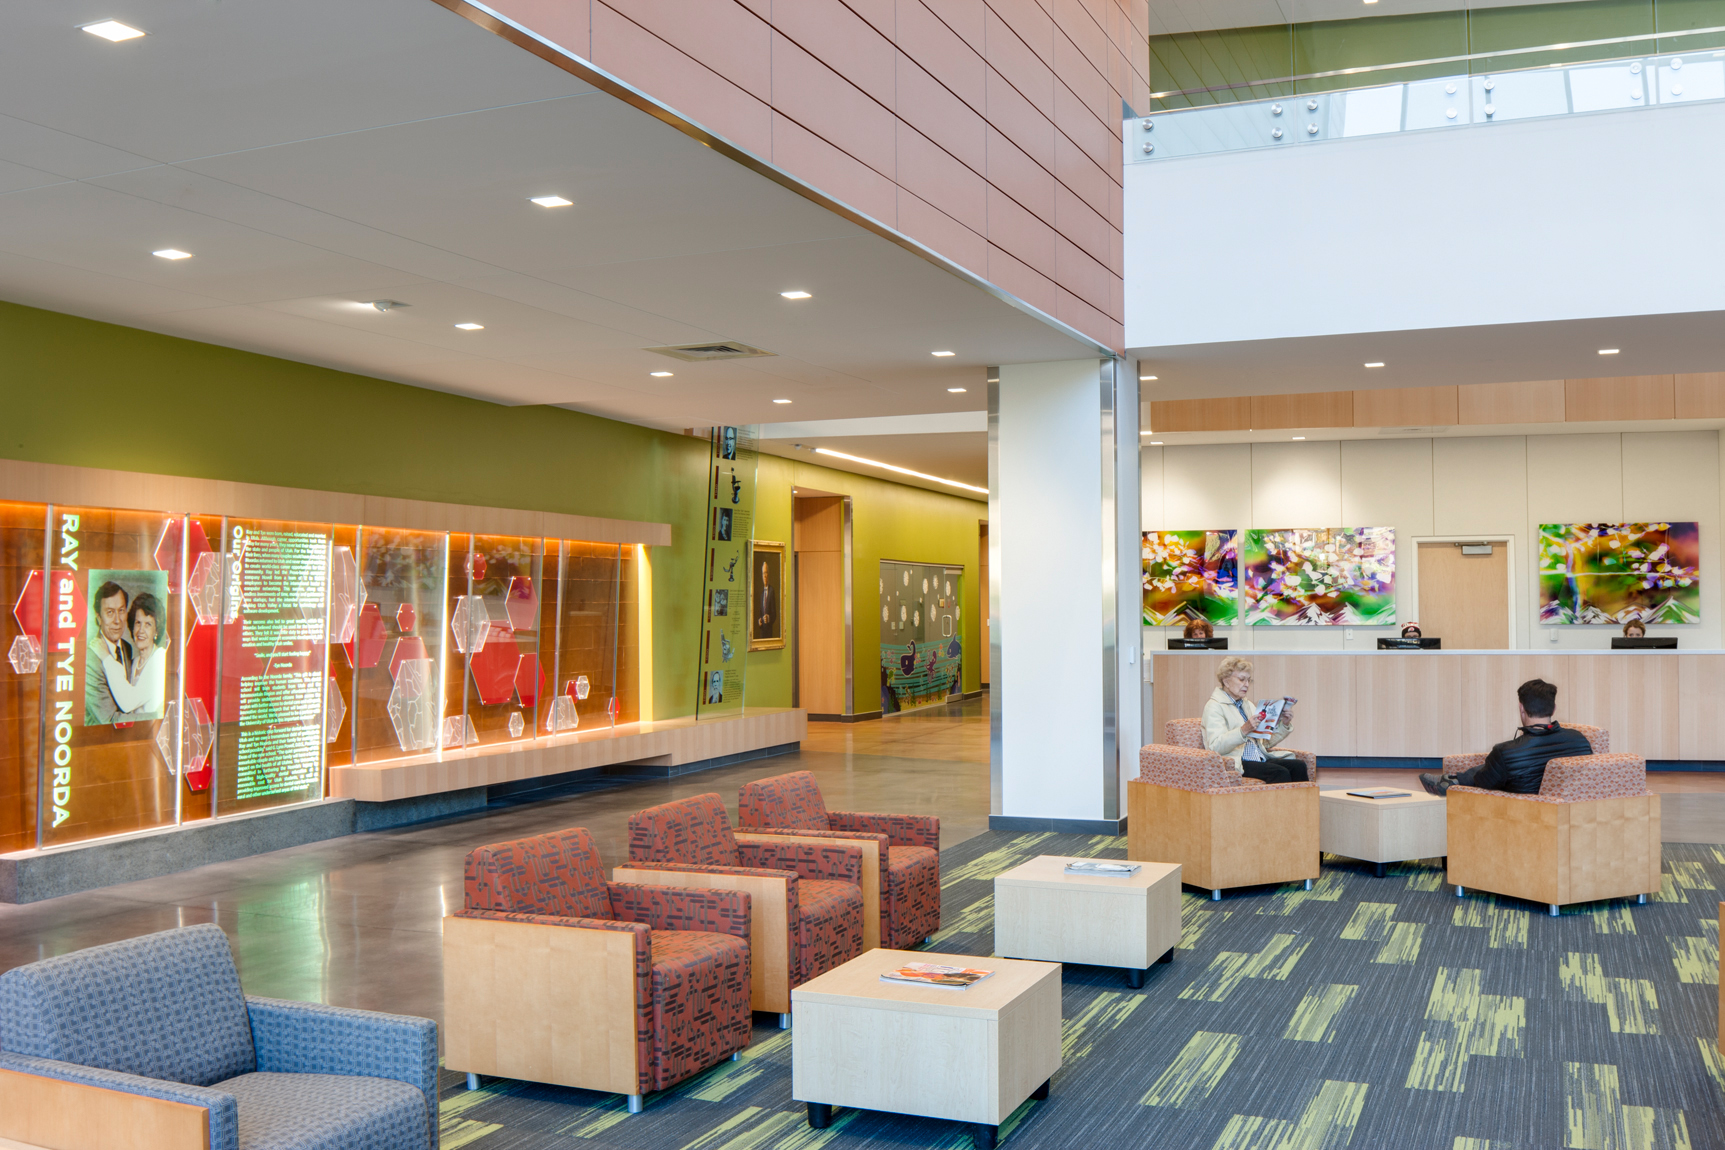 Interior lobby space of the U of U Oral Health & Sciences Building with illuminated displays explaining the history of the program, a reception desk and comfortable seating for the patrons.Architectural